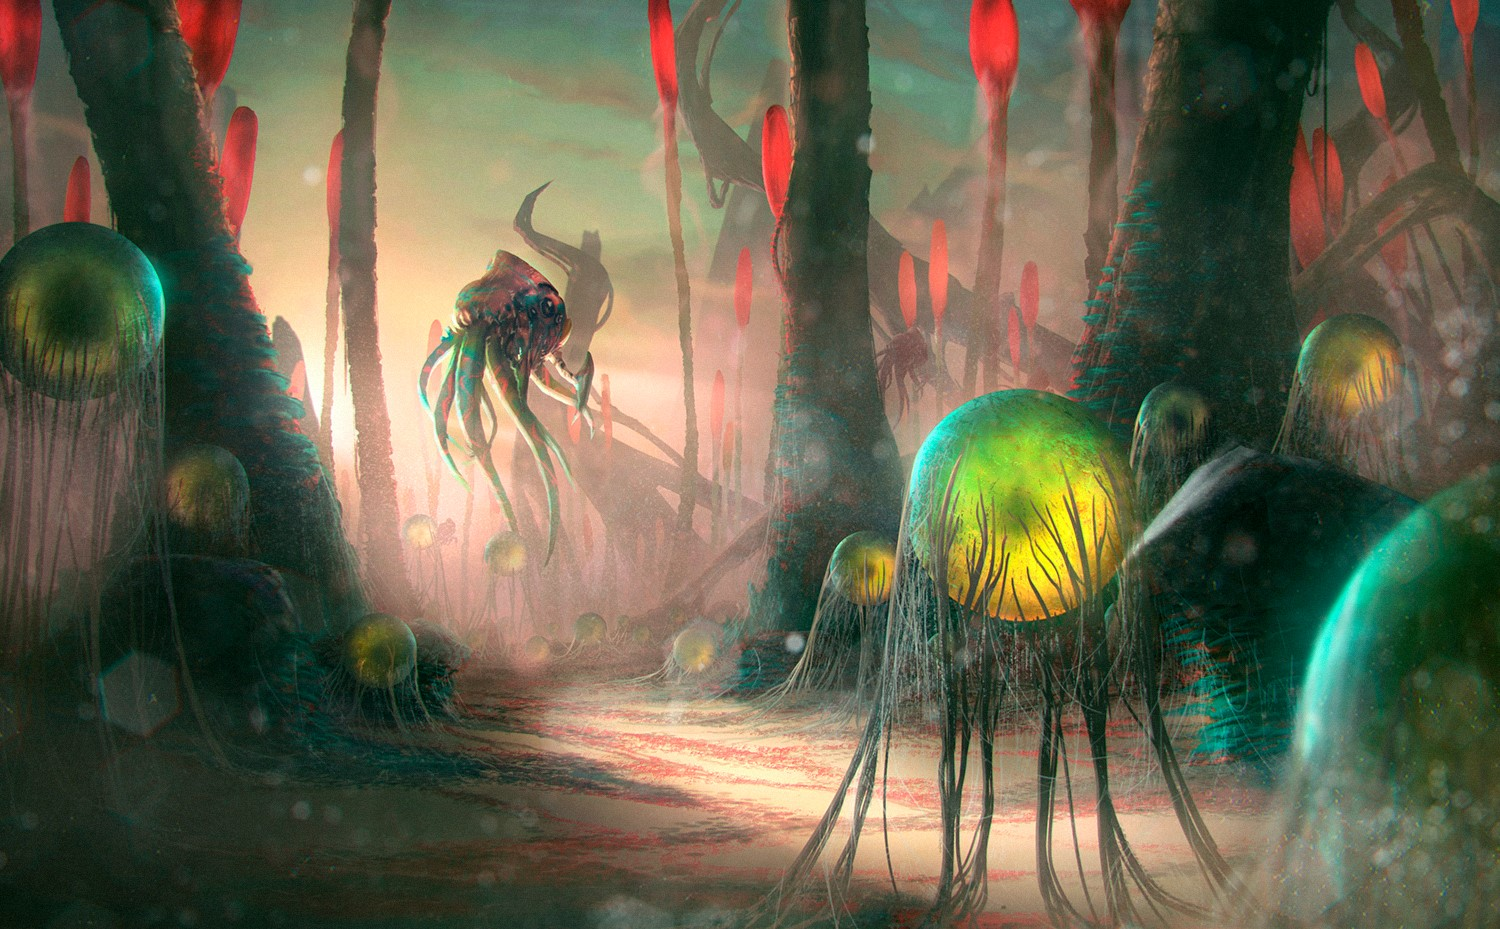 Deathspore Forest Art By: Ascary Lazos